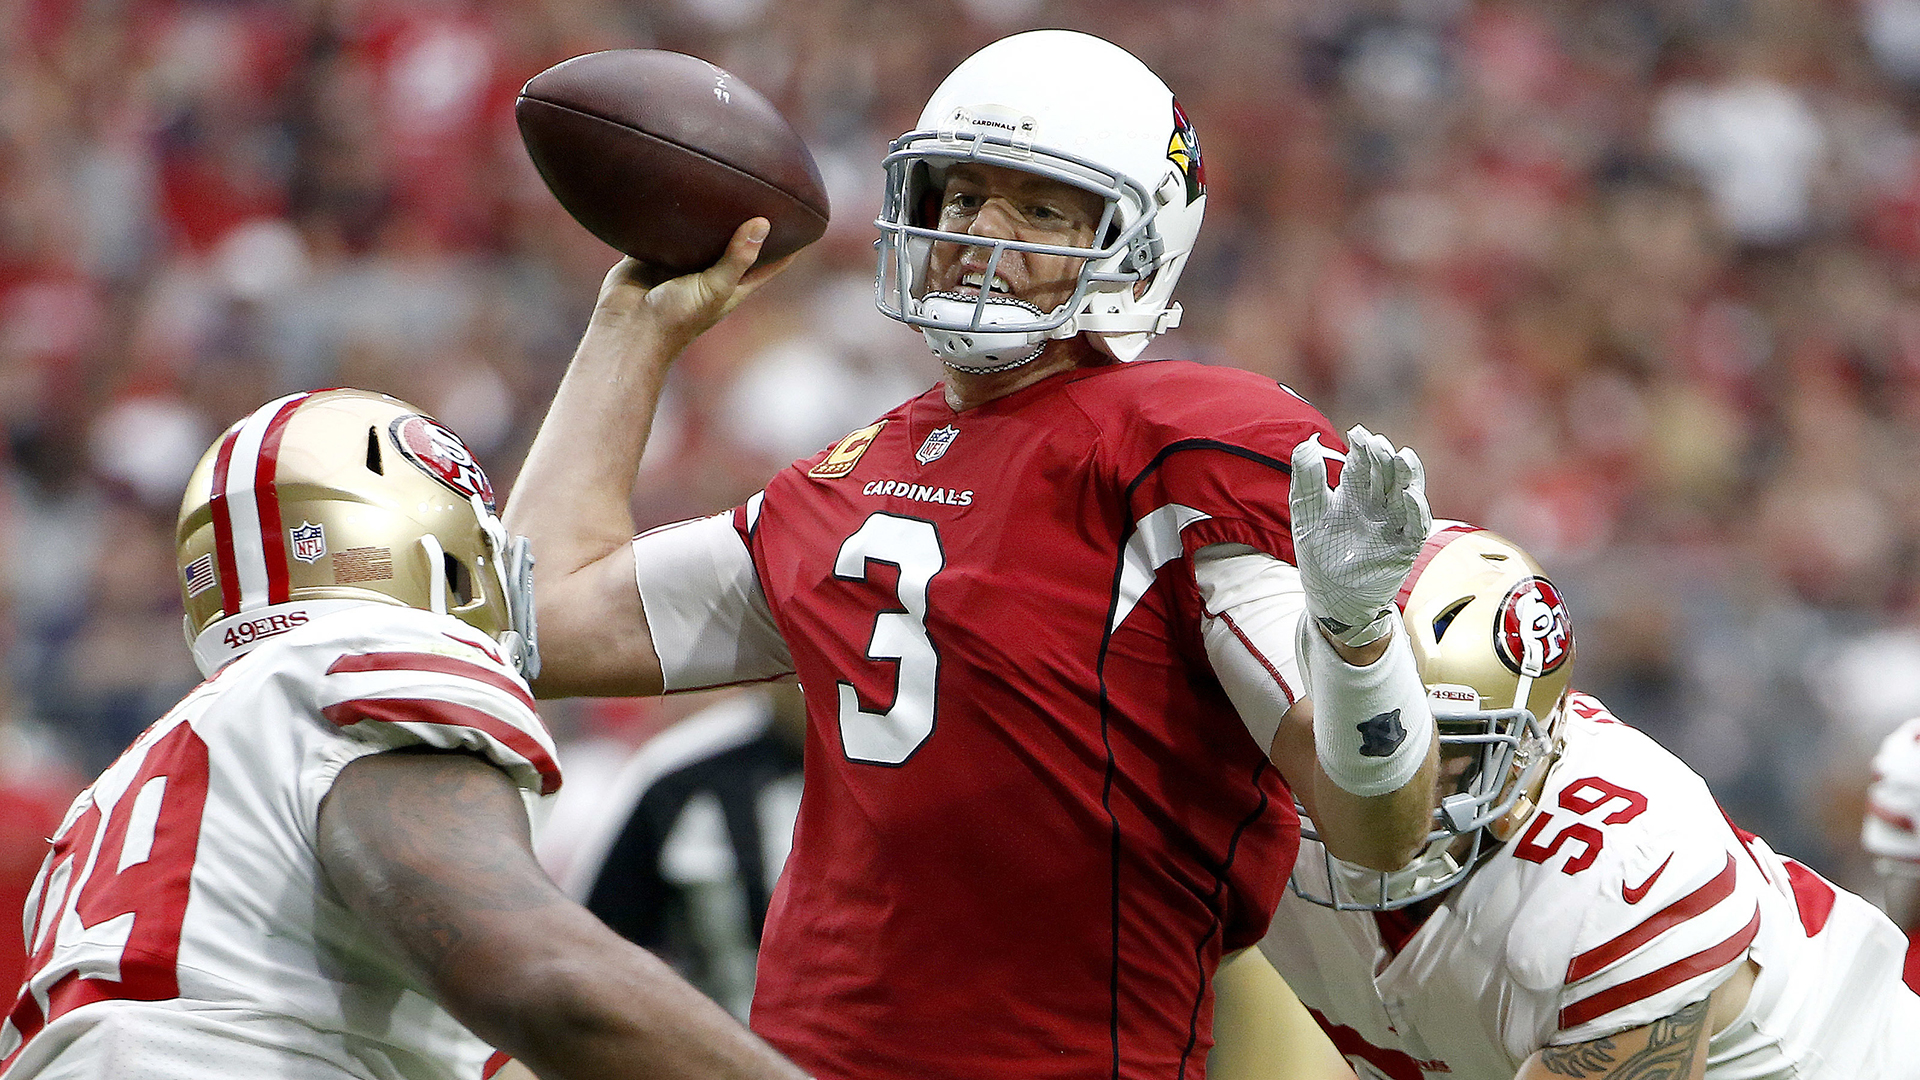 Arizona Cardinals quarterback Carson Palmer (3) is hit as he throws by San Francisco 49ers defensive end Aaron Lynch (59) to force an interception during the first half of an NFL football game, Sunday, Oct. 1, 2017, in Glendale, Ariz.